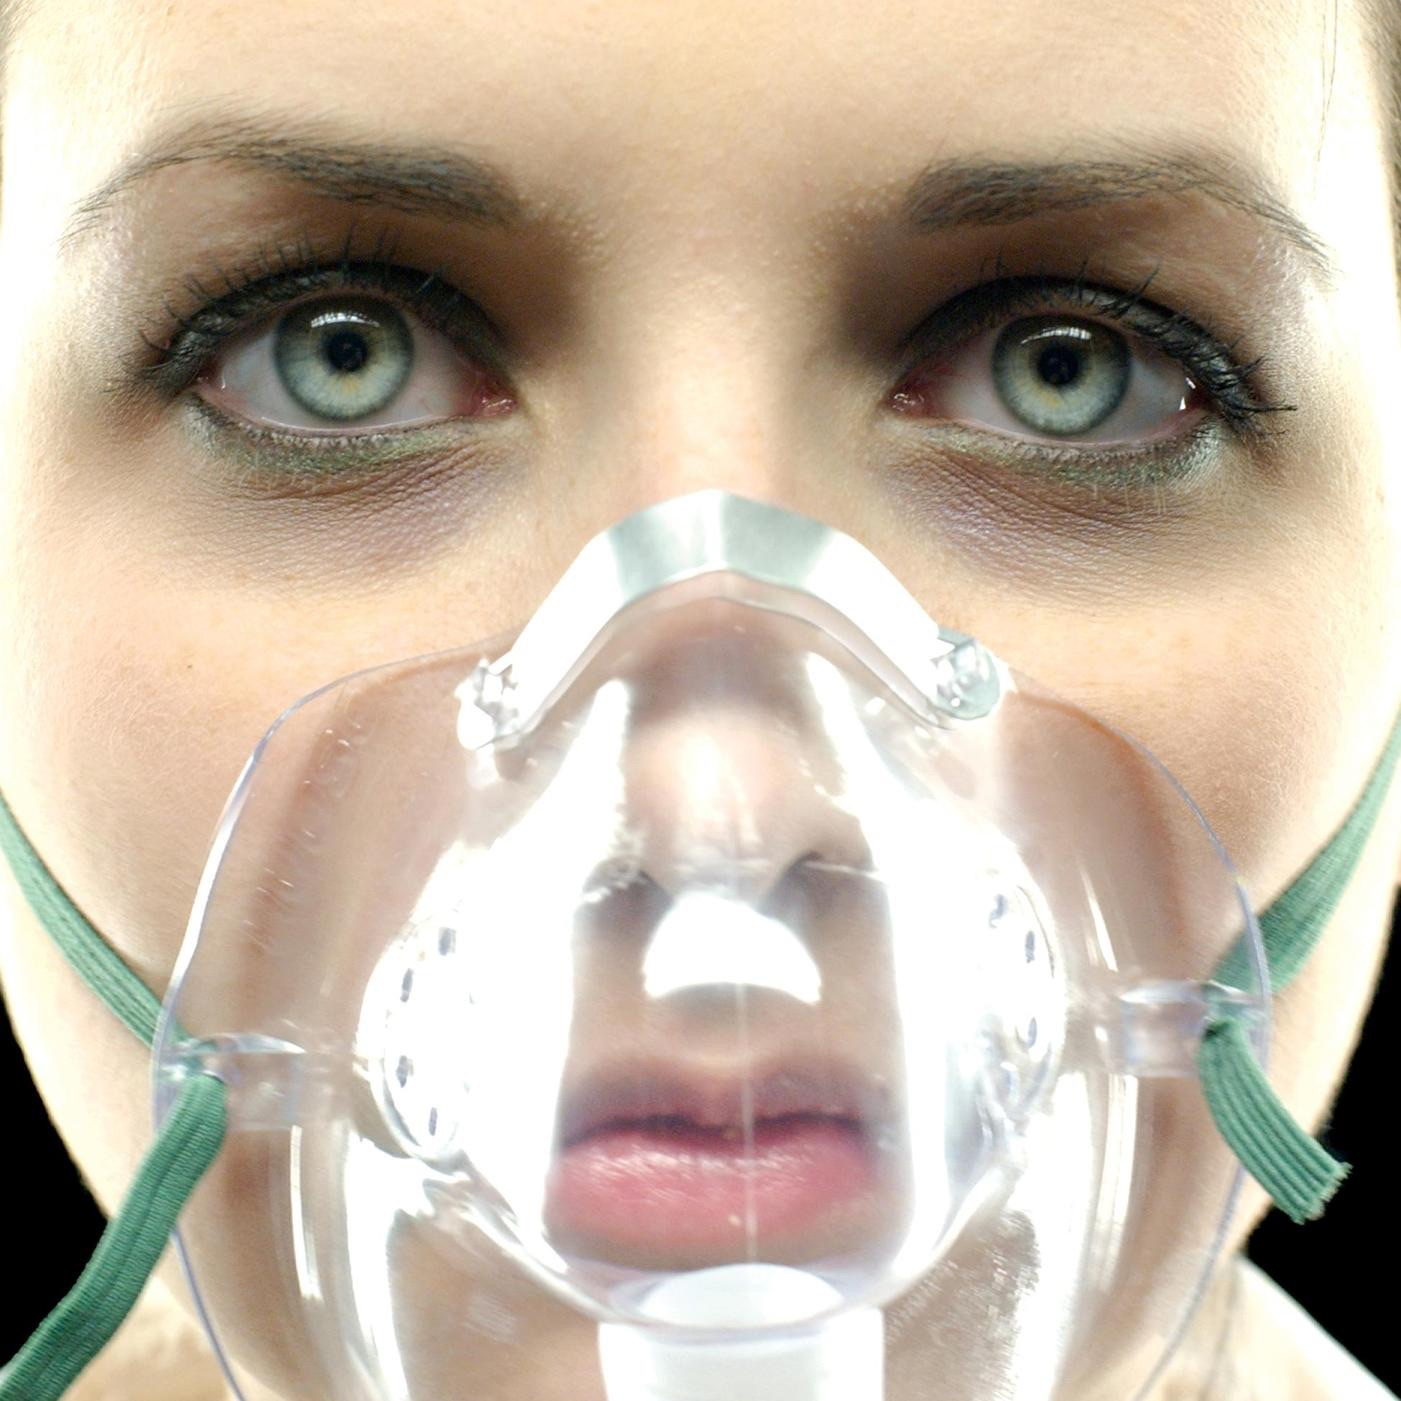 Underoath - They're Only Chasing Safety (Special Edition) (2005)